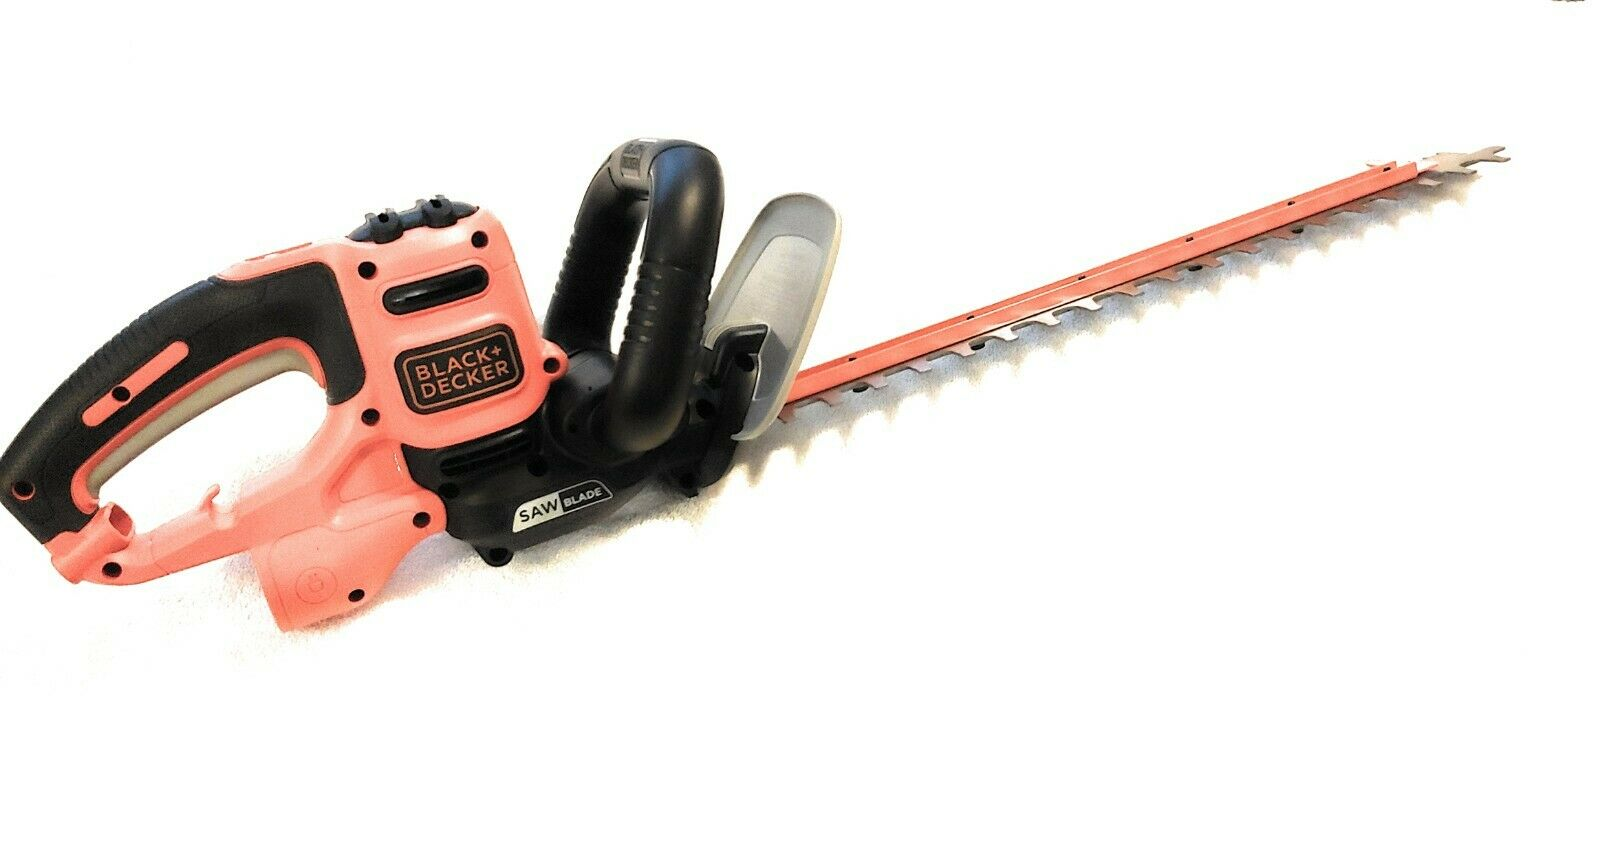 Black & Decker 20 in. SAWBLADE Electric Hedge Trimmer BEHTS3